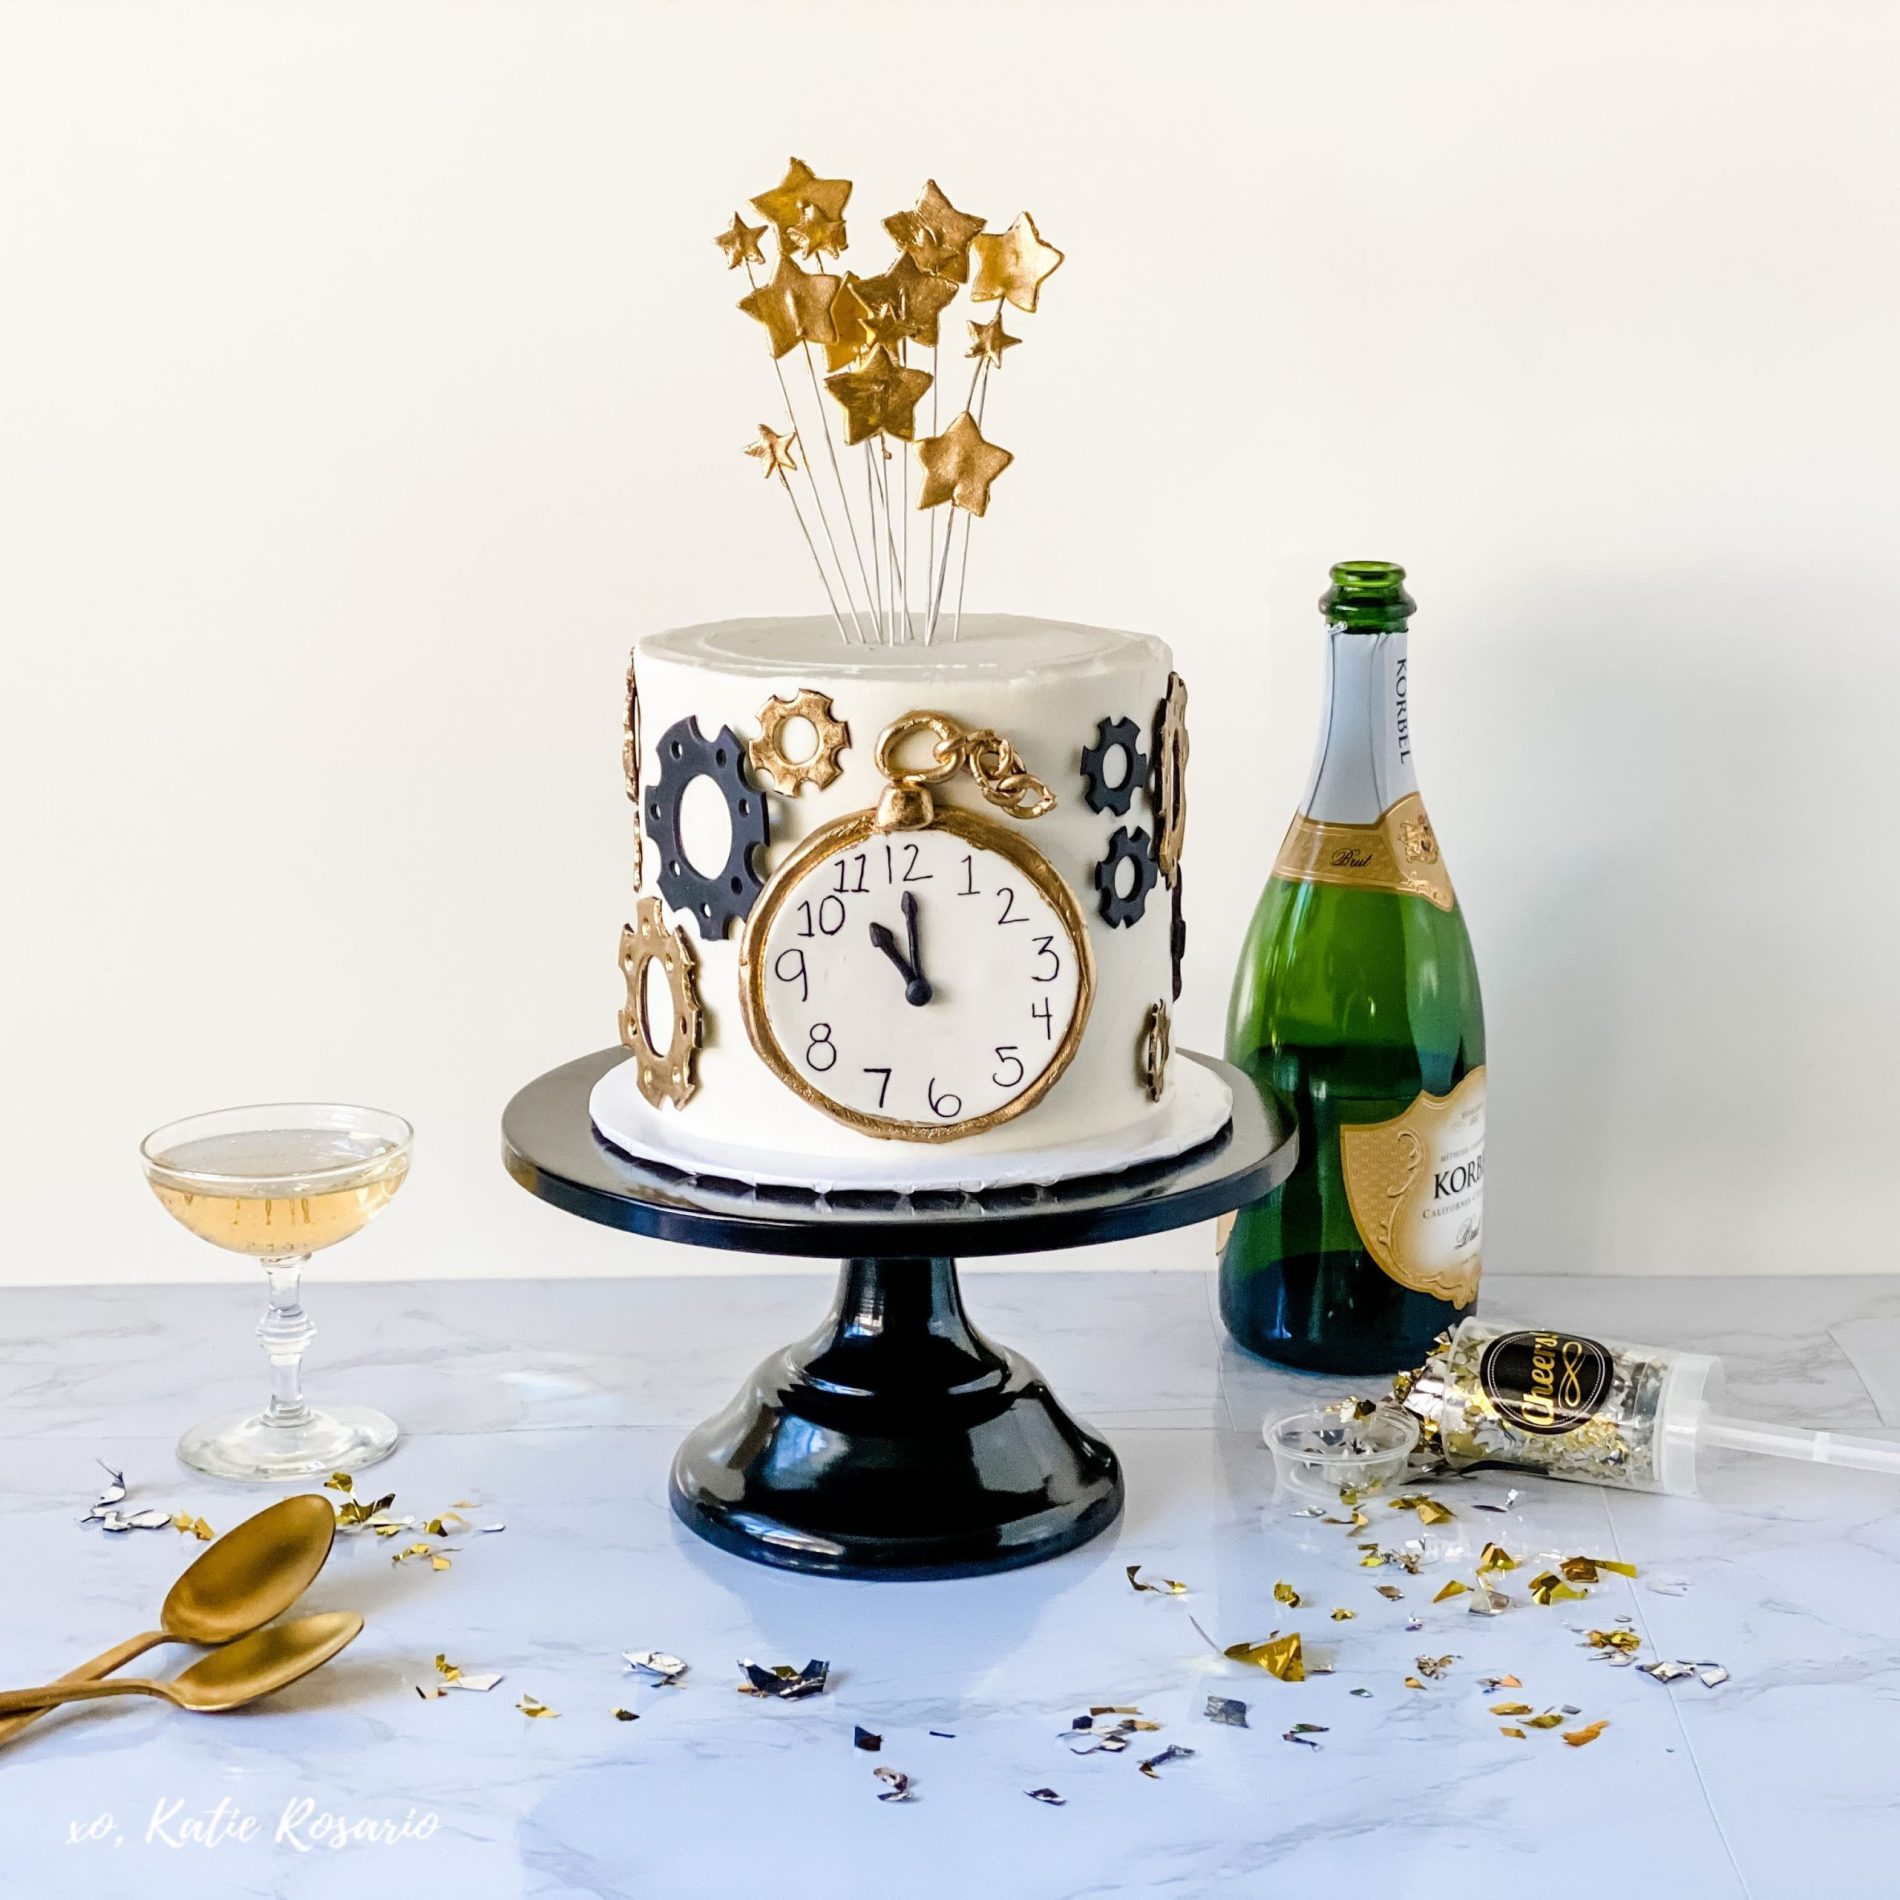 Learn how to make this New Year's Eve Champagne Cake that's elegant and delicious. And I am obsessed with these fondant decorations. This makes me excited to teach you because it's excellent practice when you are making a custom cake. Here is the perfect cake to ring in the new year. #xokatierosario #katierosariocake #champagnecake #newyearsevecake #cakedecoratingtips